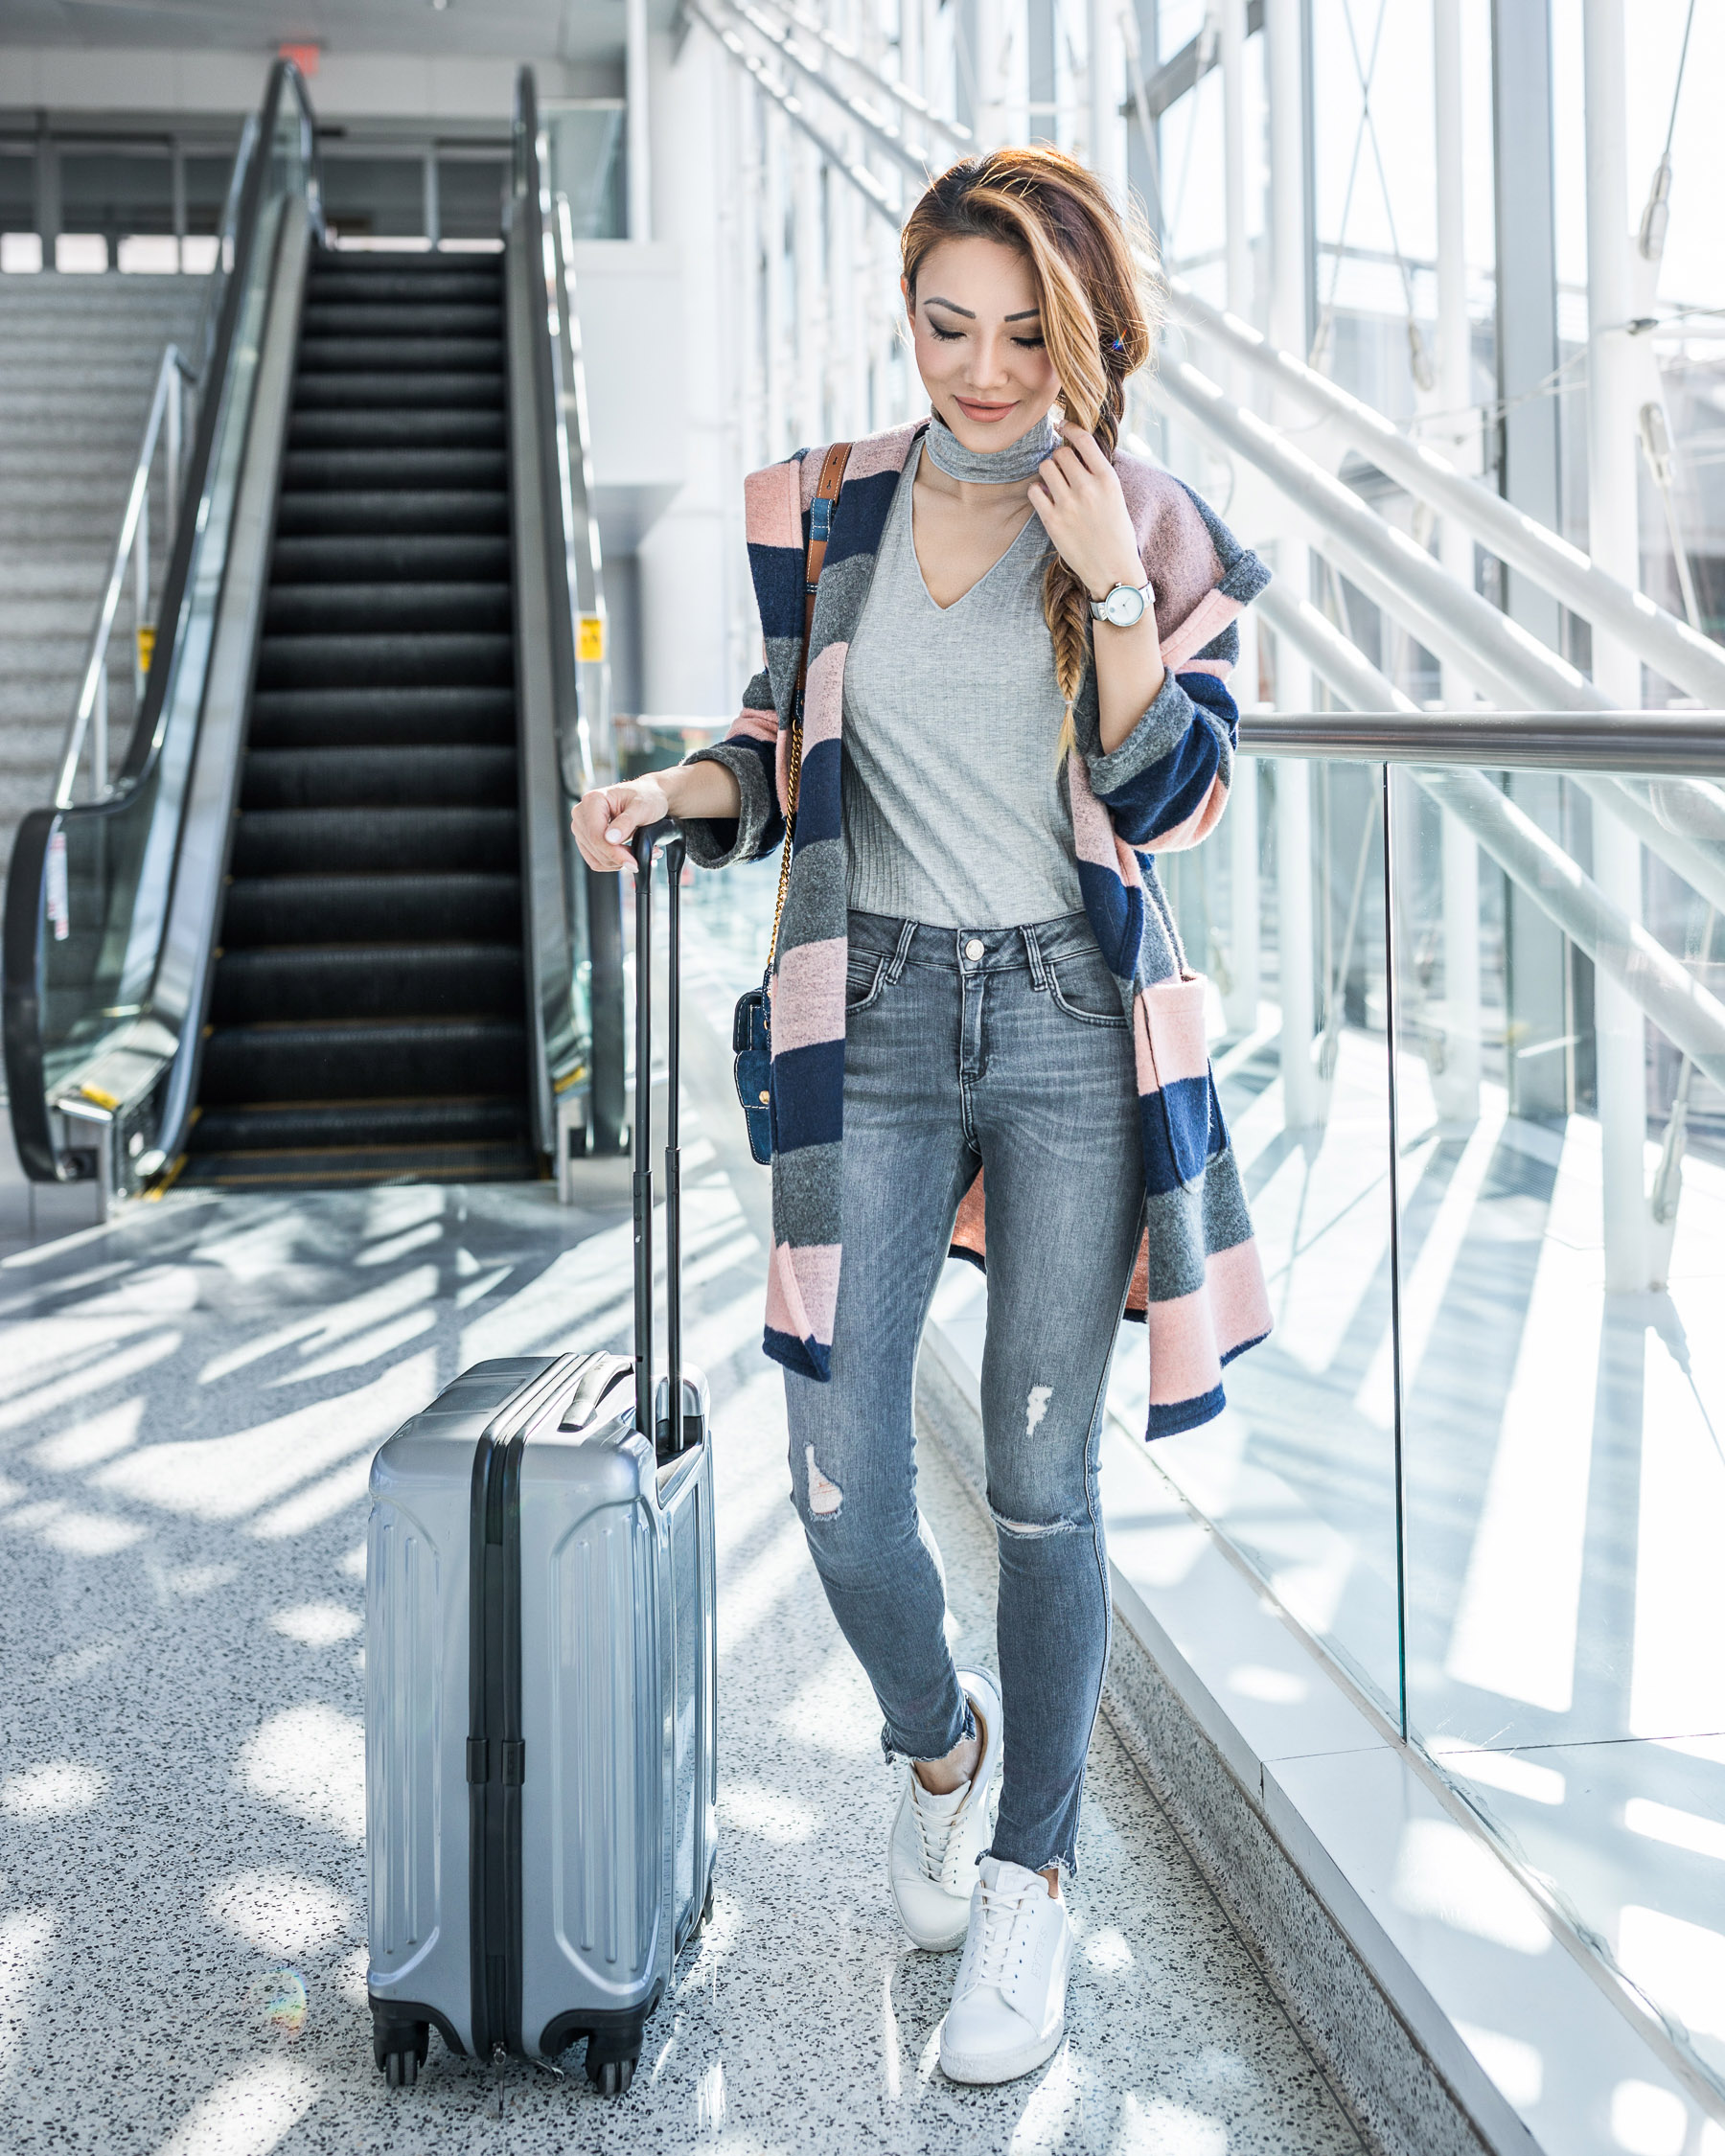 Cardigan - 7 Essentials for Comfy Travel Style // NotJessFashion.com